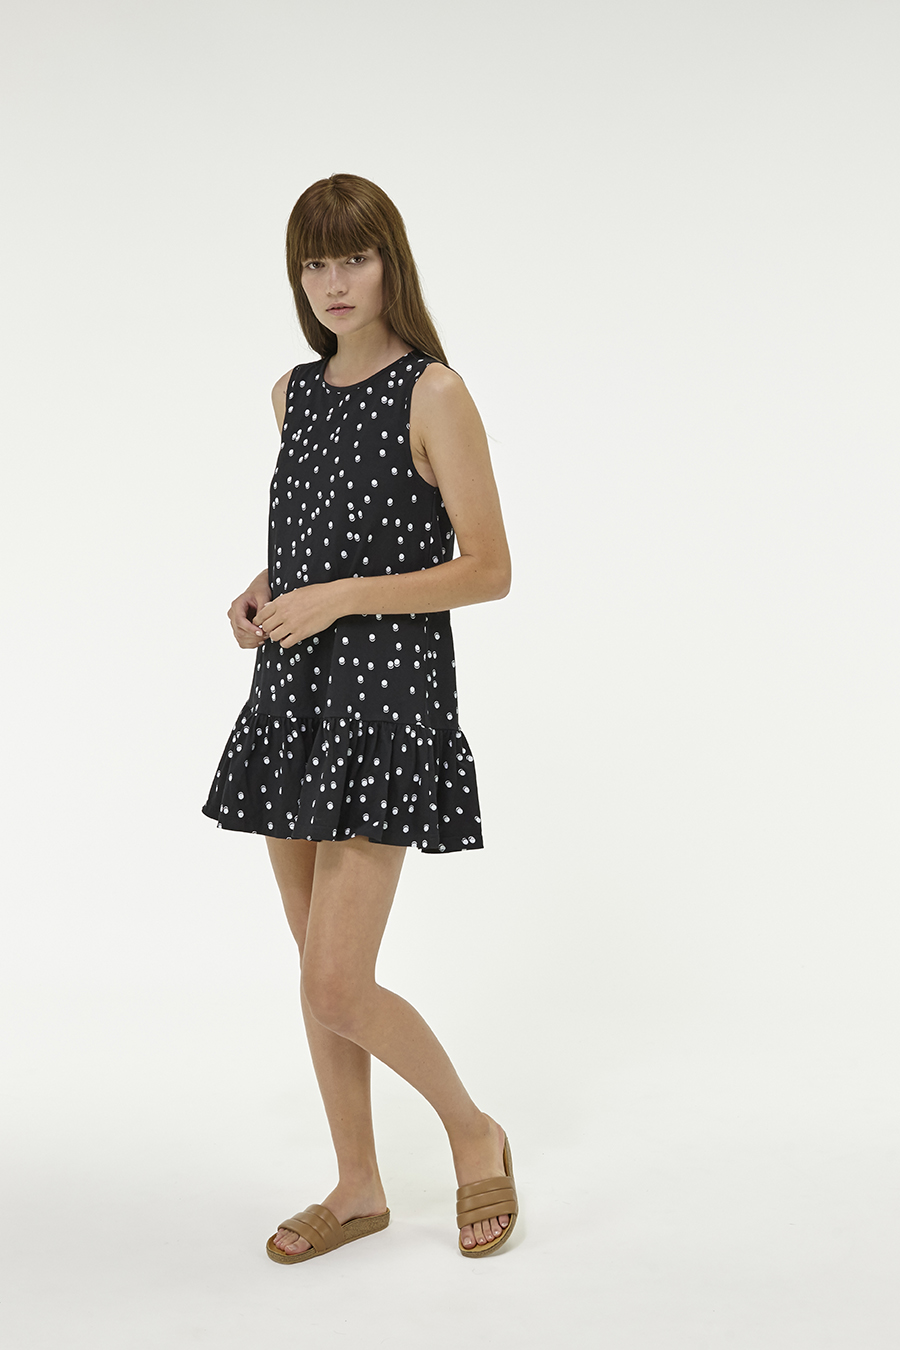 Huffer_Q3-16_W-Port-Volley-Dress_Black-04